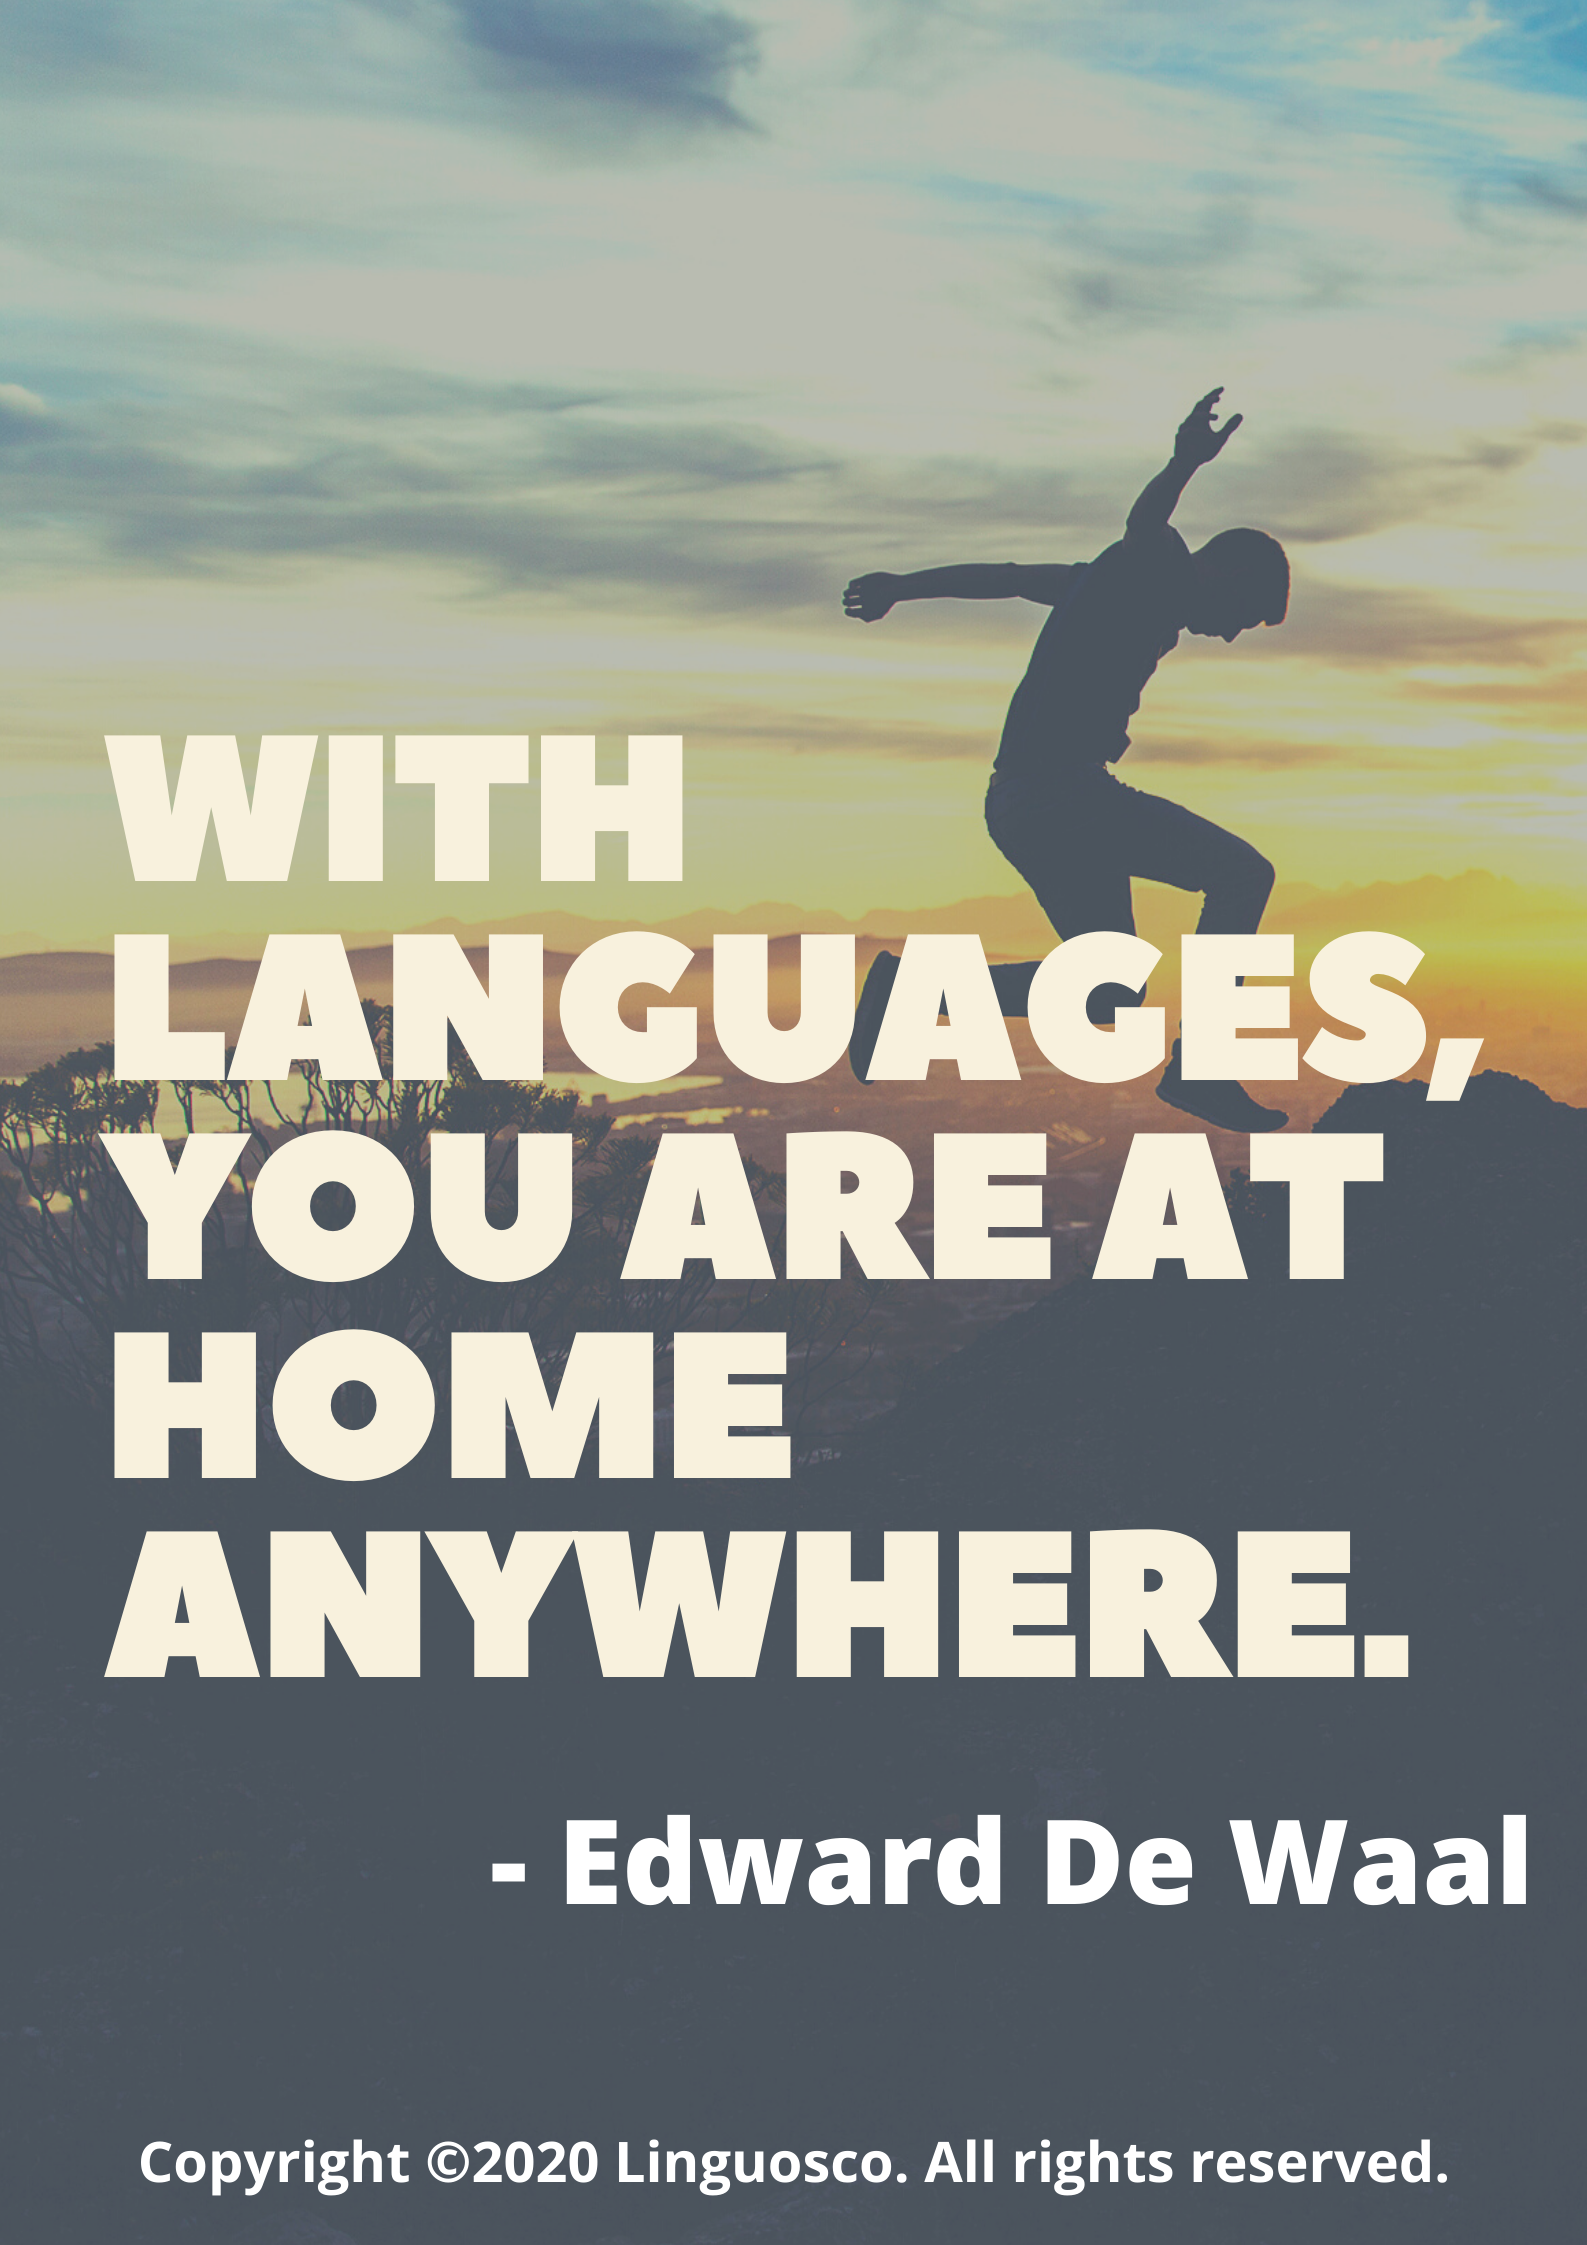 With Languages, You Are At Home Anywhere.